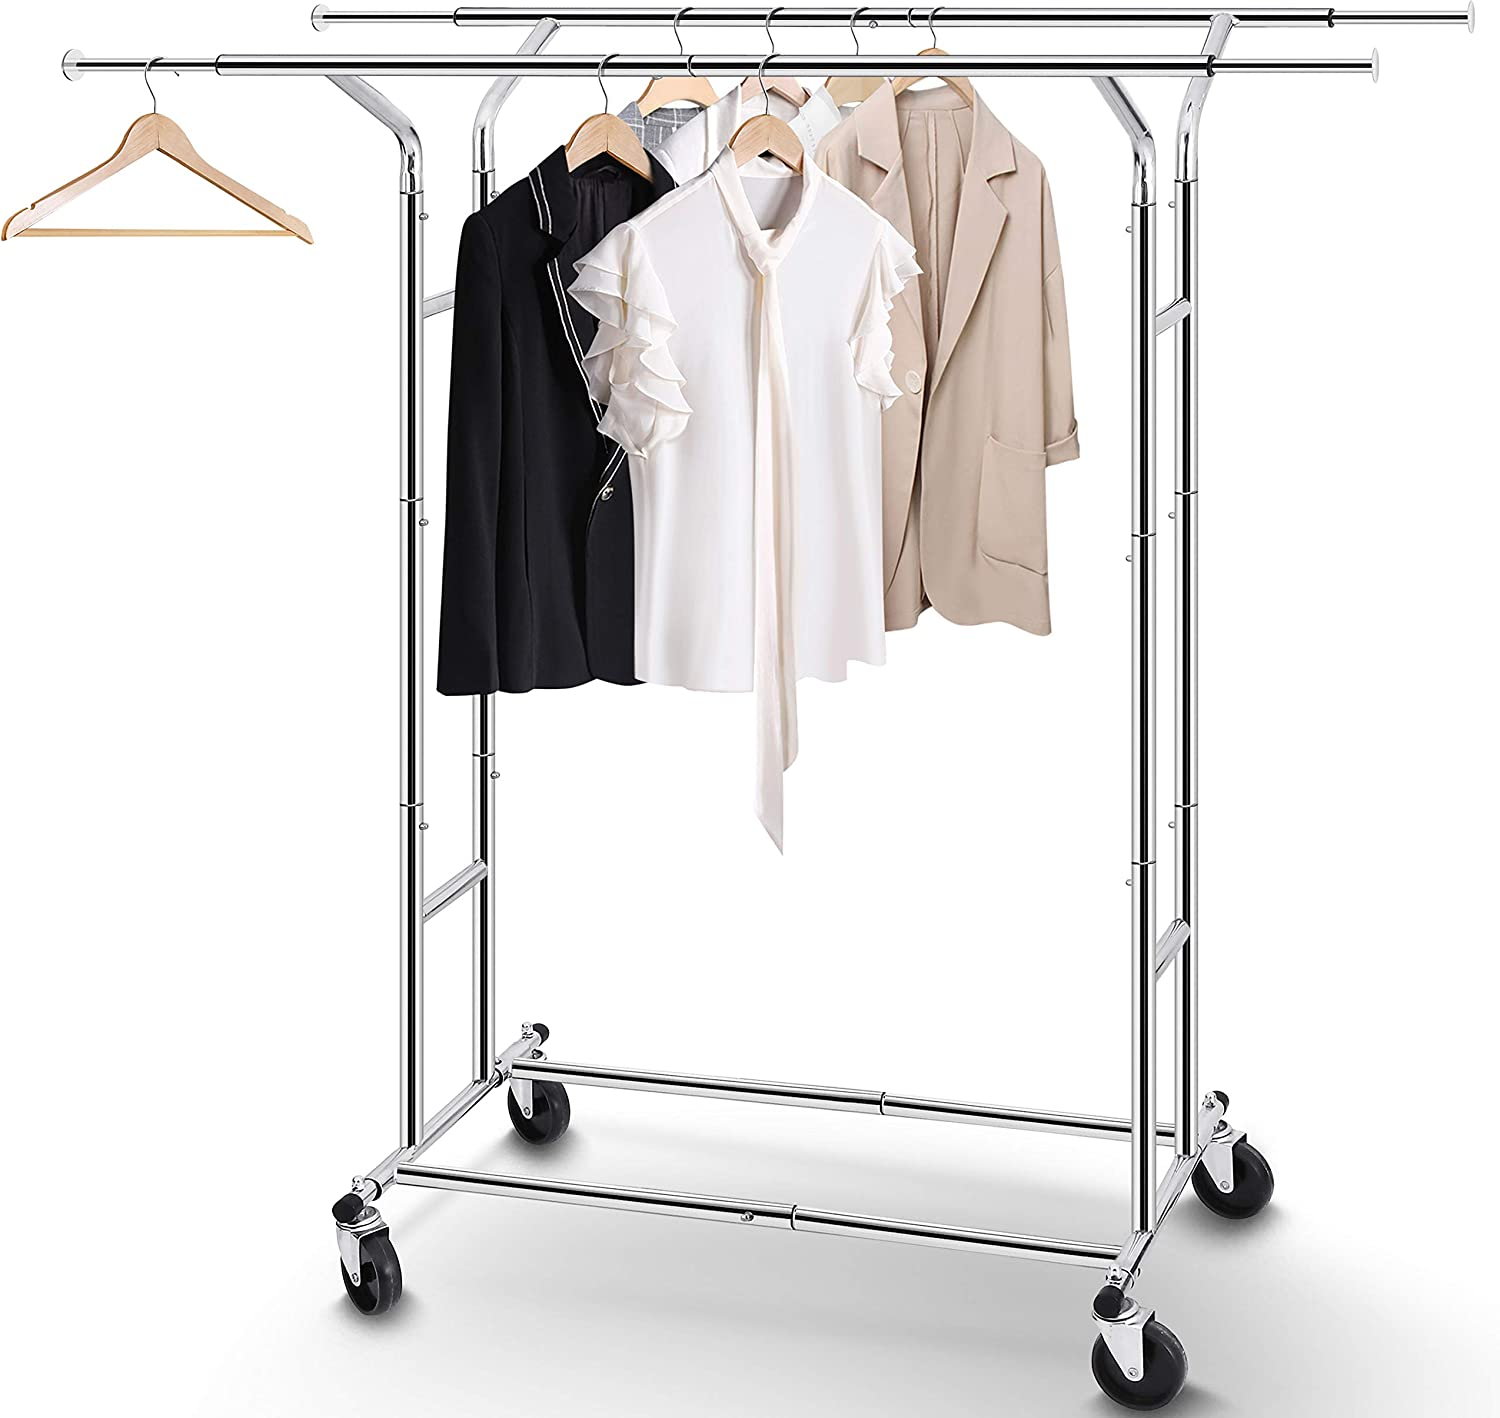 Simple Trending Double Rail Clothes Garment Rack, Heavy Duty Commercial Grade Clothing Rolling Rack on Wheels with Expandable Collapsible Clothing Rack